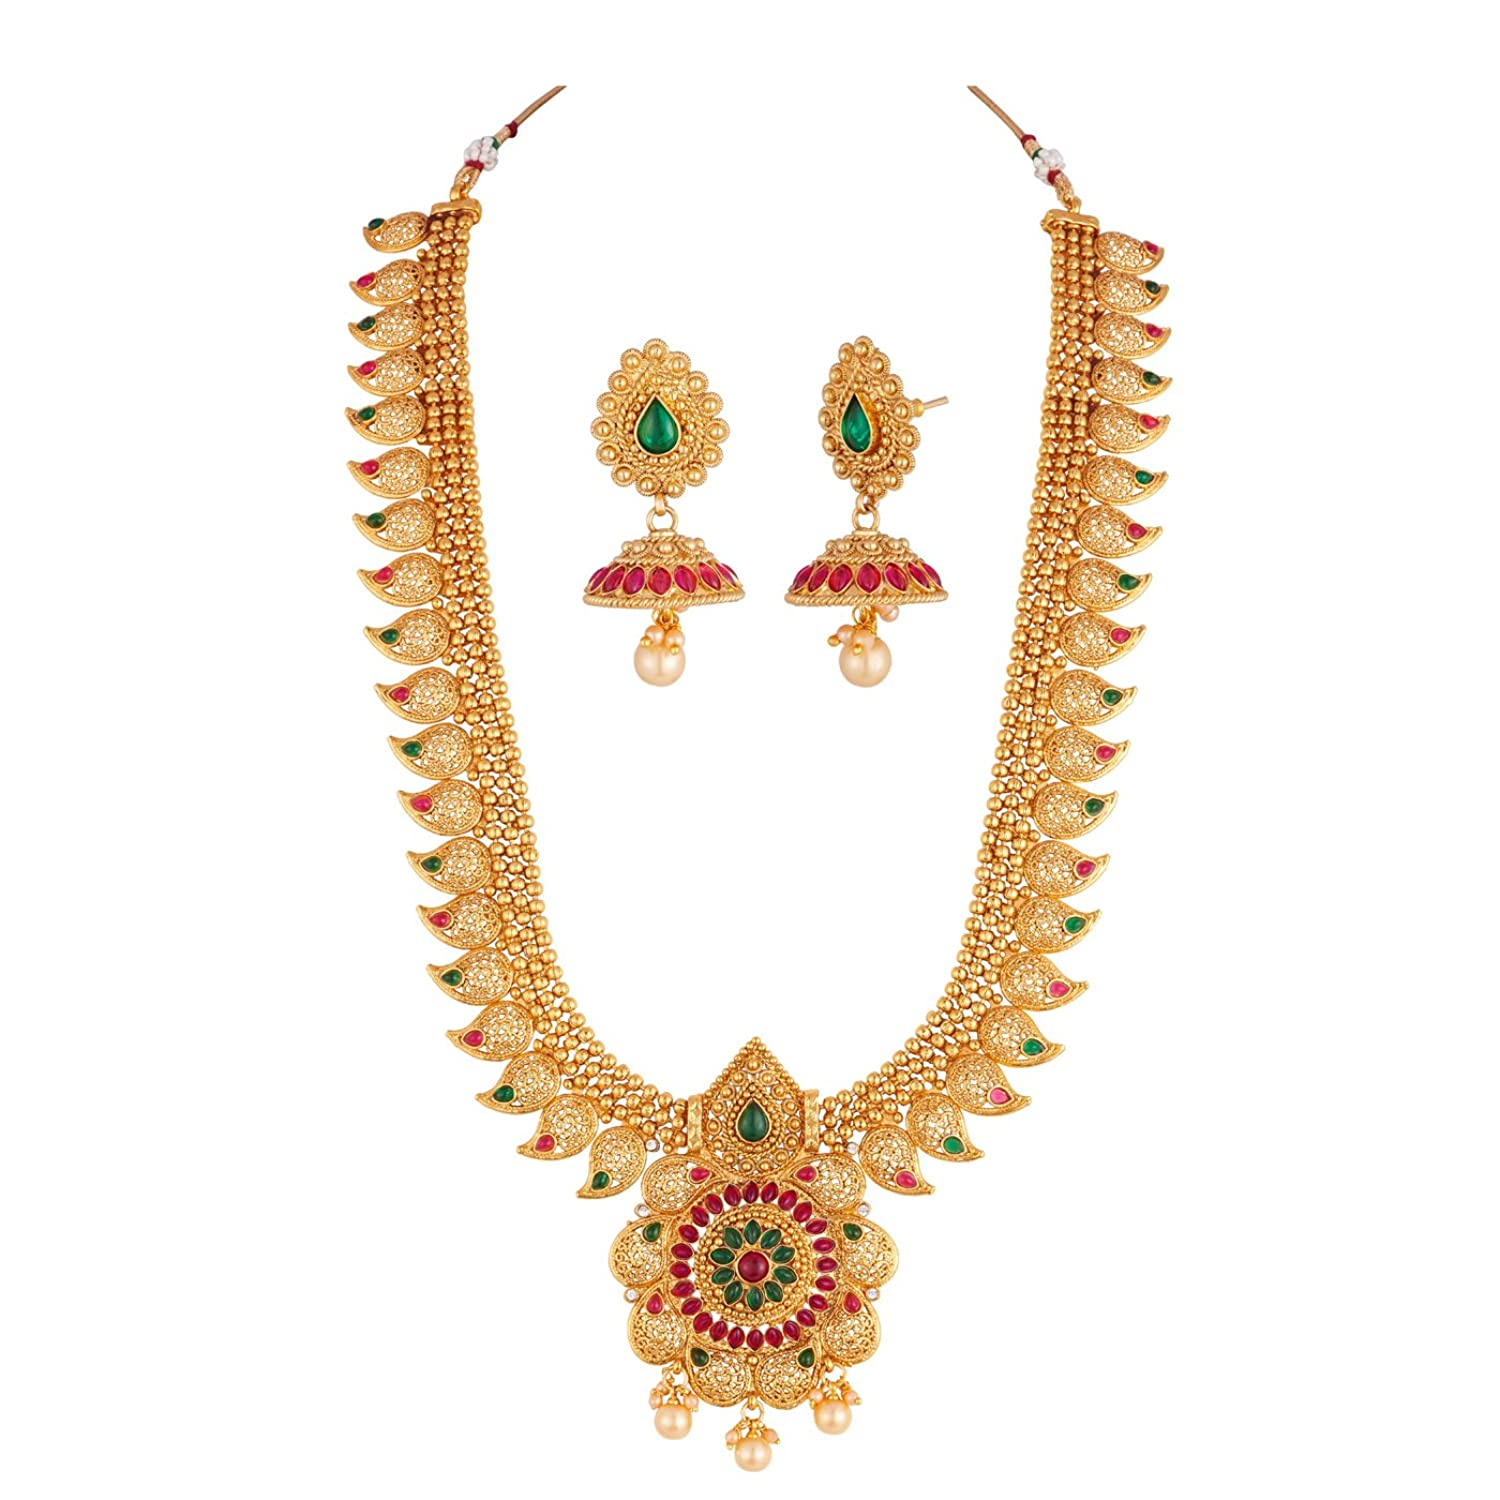 Necklaces for Women   Buy Necklaces, Pendants Online at Low Prices ...